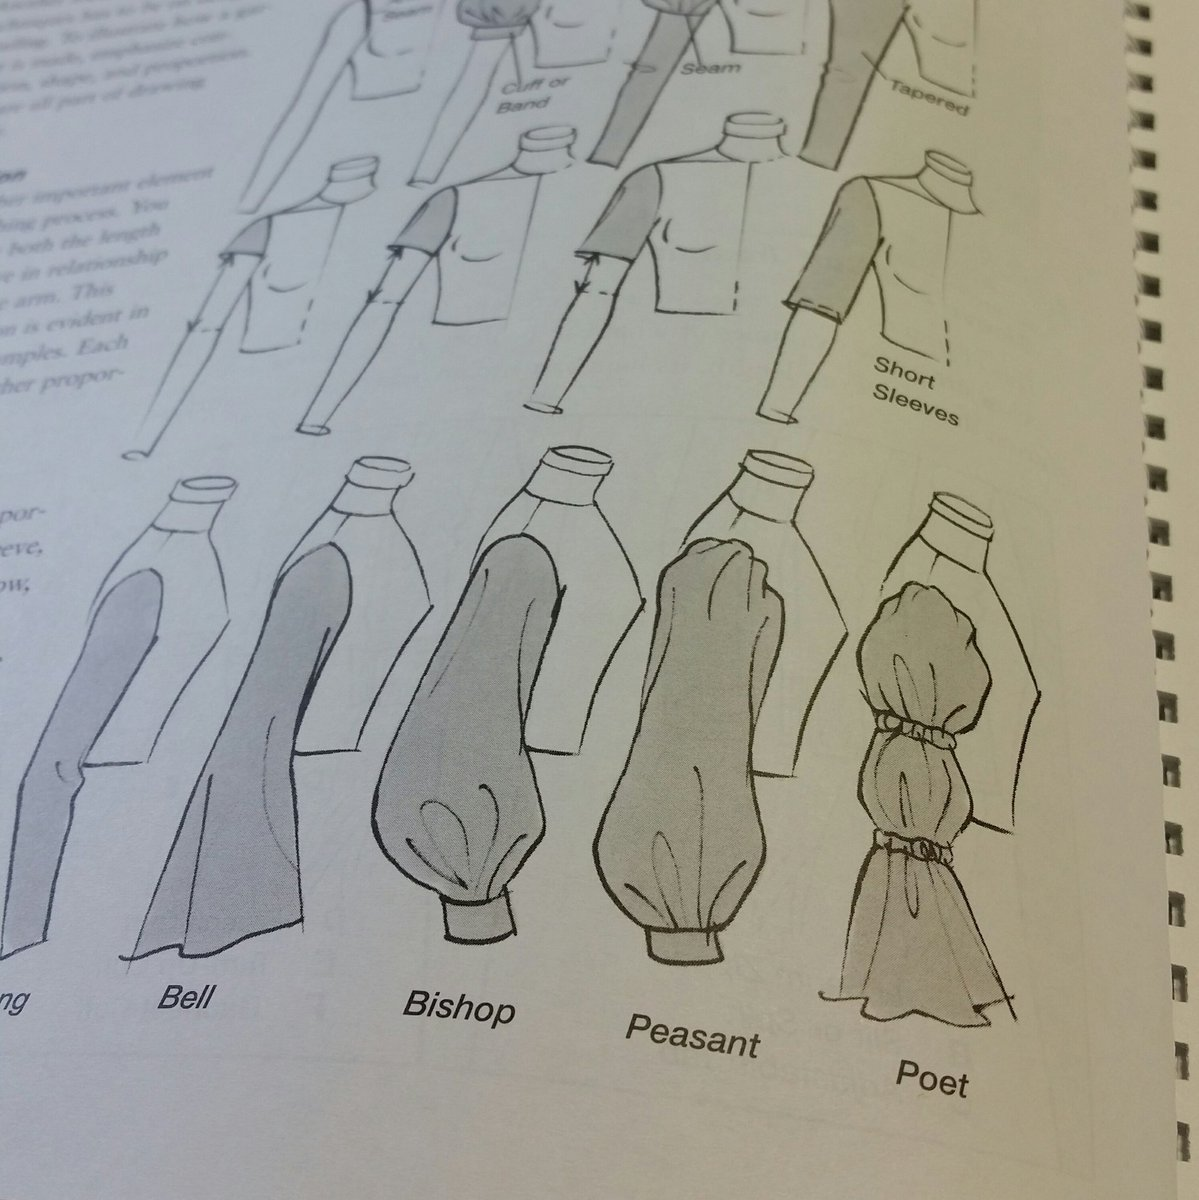 Aleksi Gray On Twitter Looking Through A Draping Book Again And Ah This Is Where I Learned How To Draw Clothes Better If You Feel Like Getting Hands On Take A